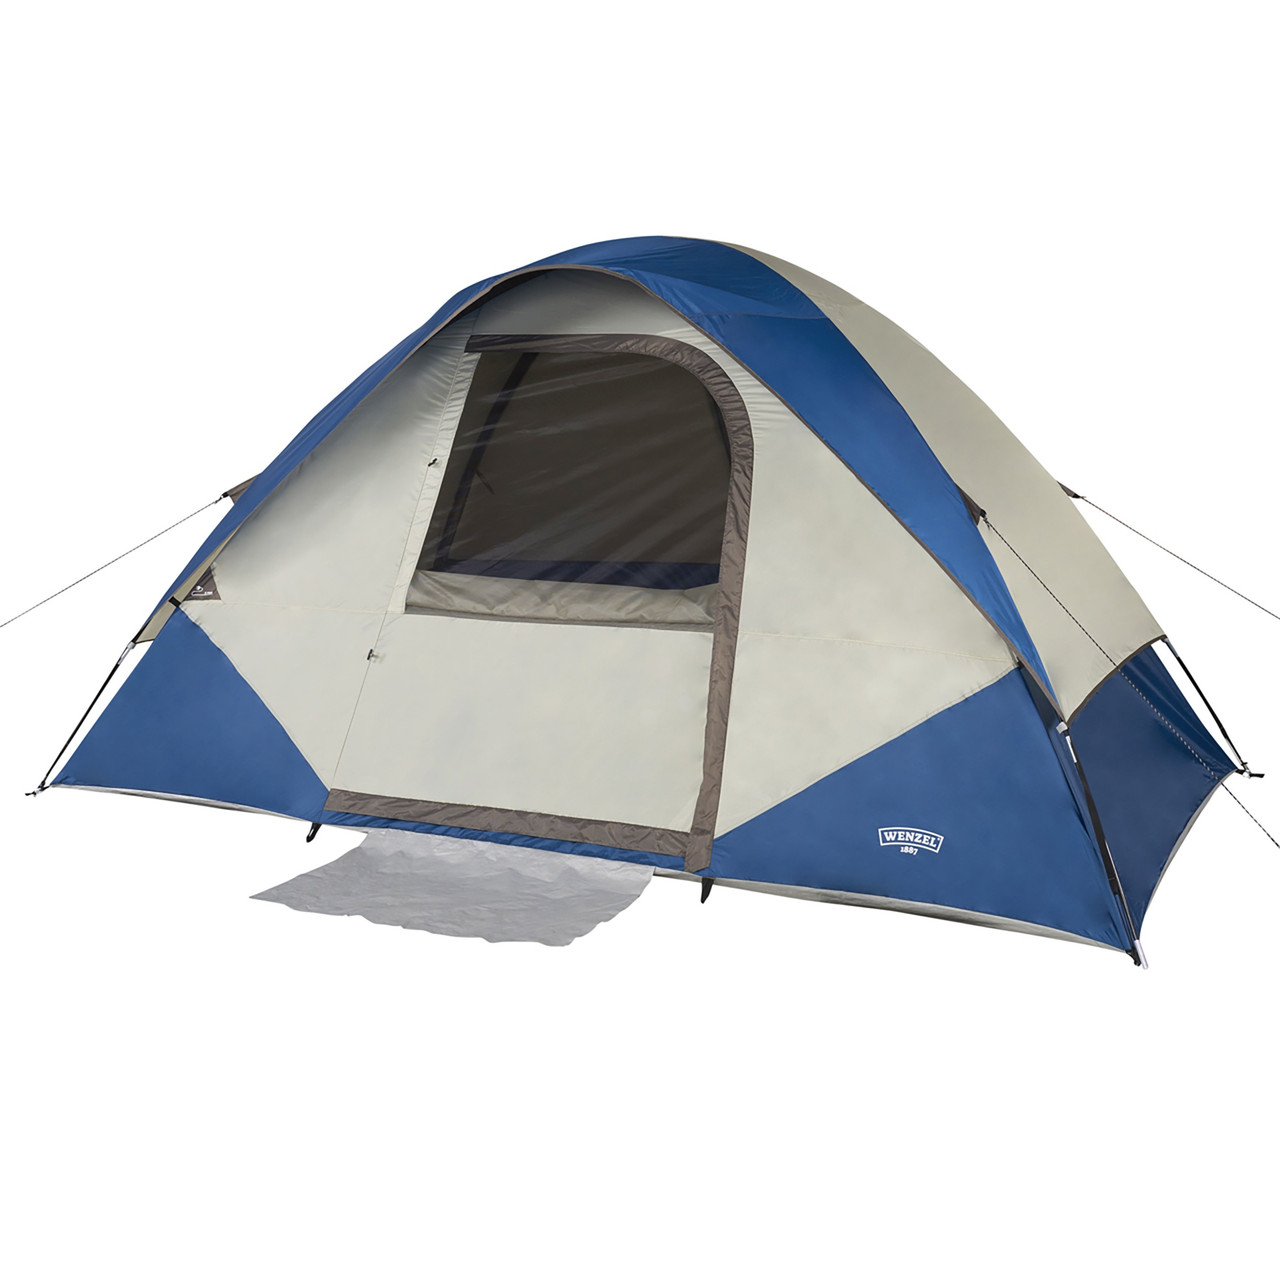 Wenzel Tamarack 6 Person Dome Tent, blue/white, shown with fly attached and front window opened